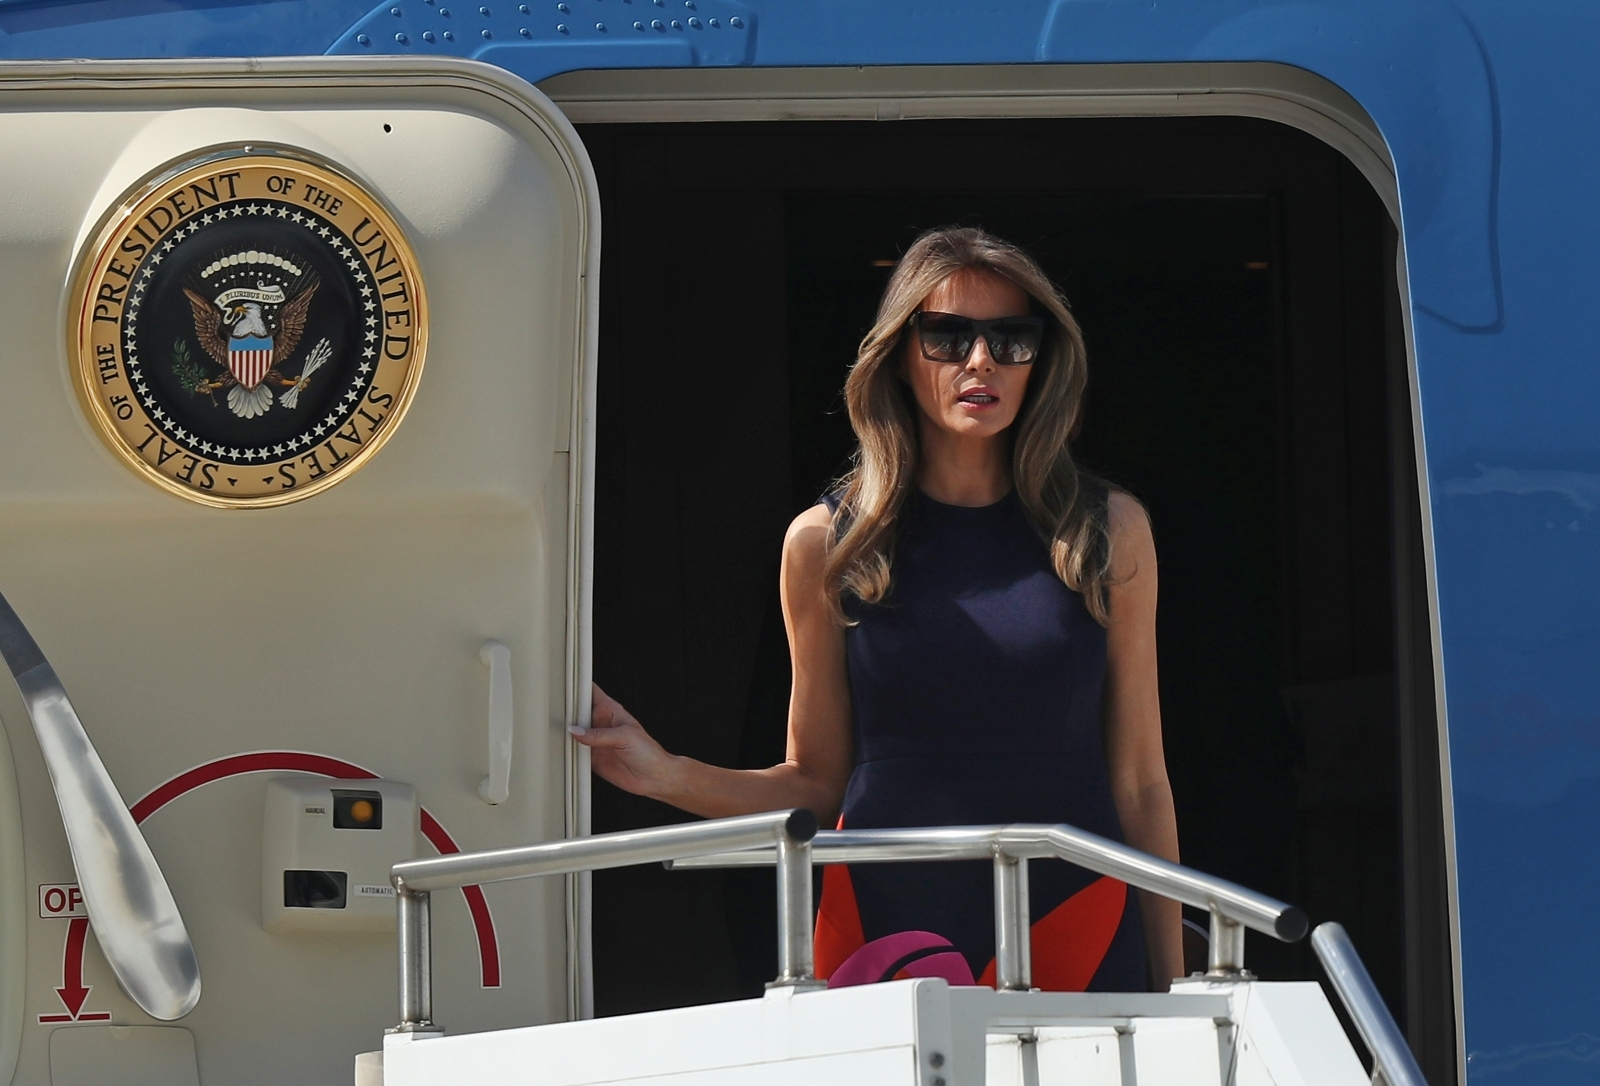 Melania Trump was 'furious' after Stormy Daniels reports